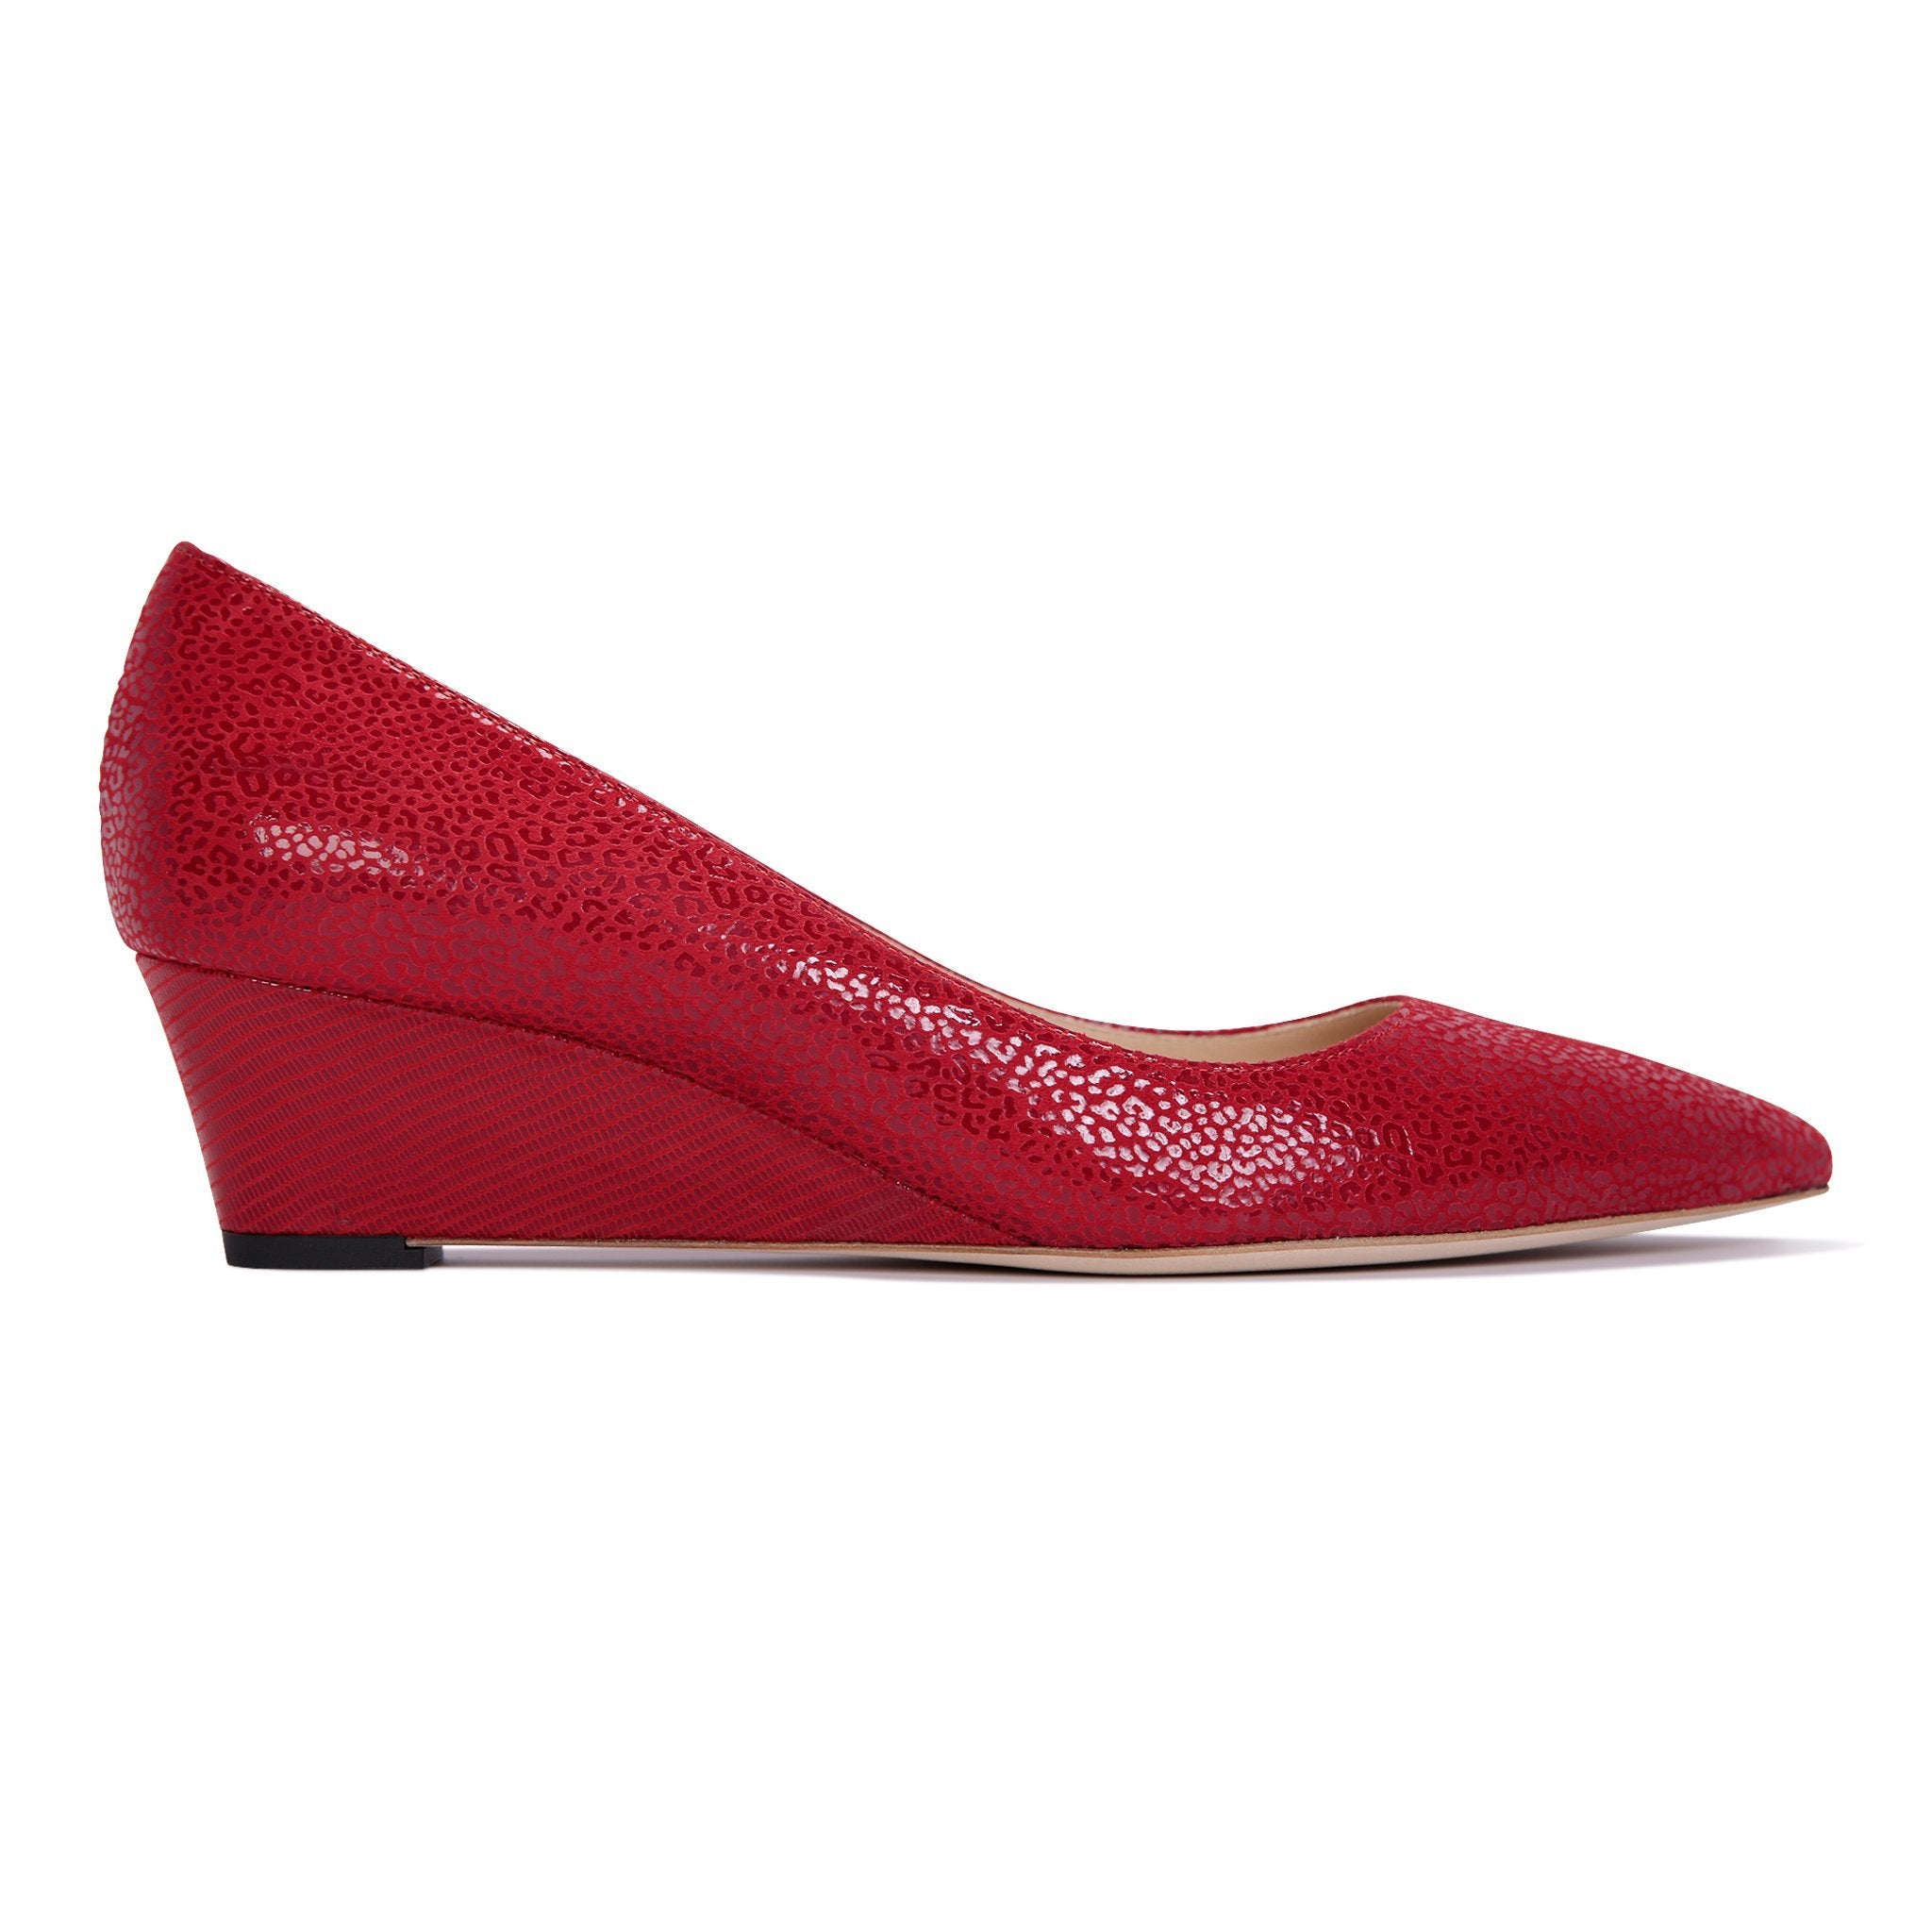 TRENTO - Savannah + Varanus Rosso, VIAJIYU - Women's Hand Made Sustainable Luxury Shoes. Made in Italy. Made to Order.